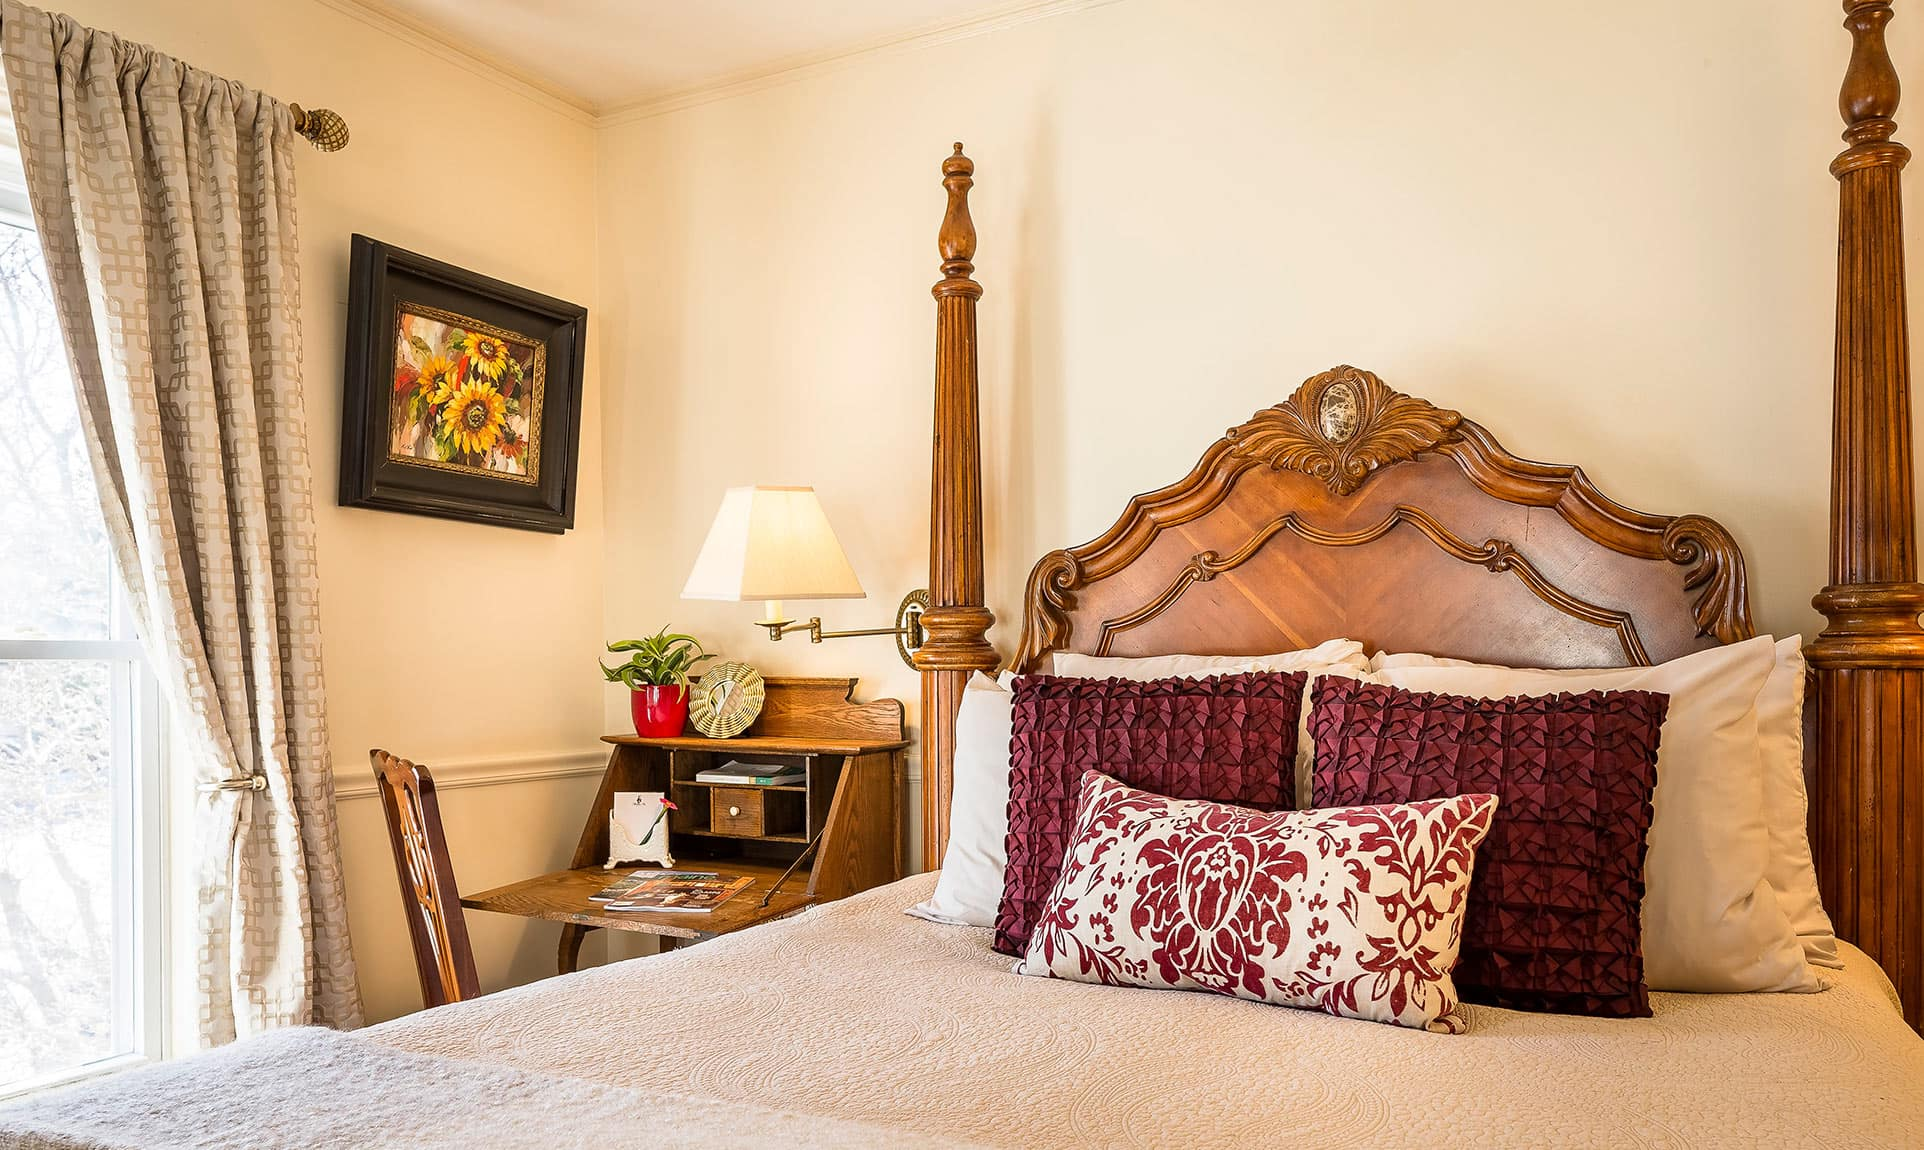 Bed and writing desk in the Toscana Room at our Camden, Maine boutique hotel